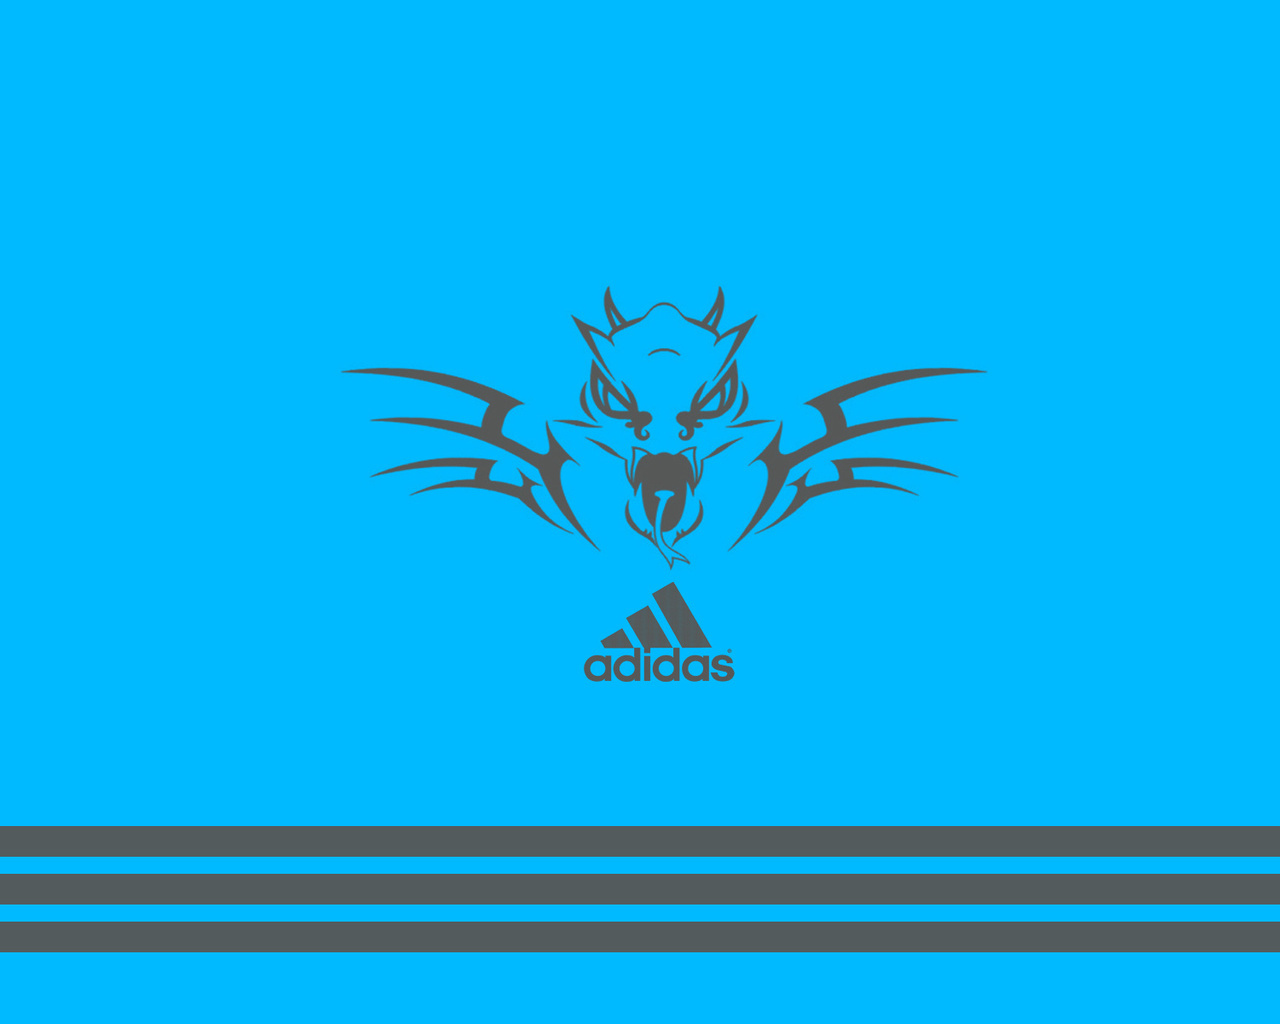 17892 Screensavers and Wallpapers Adidas for phone. Download Brands, Background, Logos, Adidas pictures for free